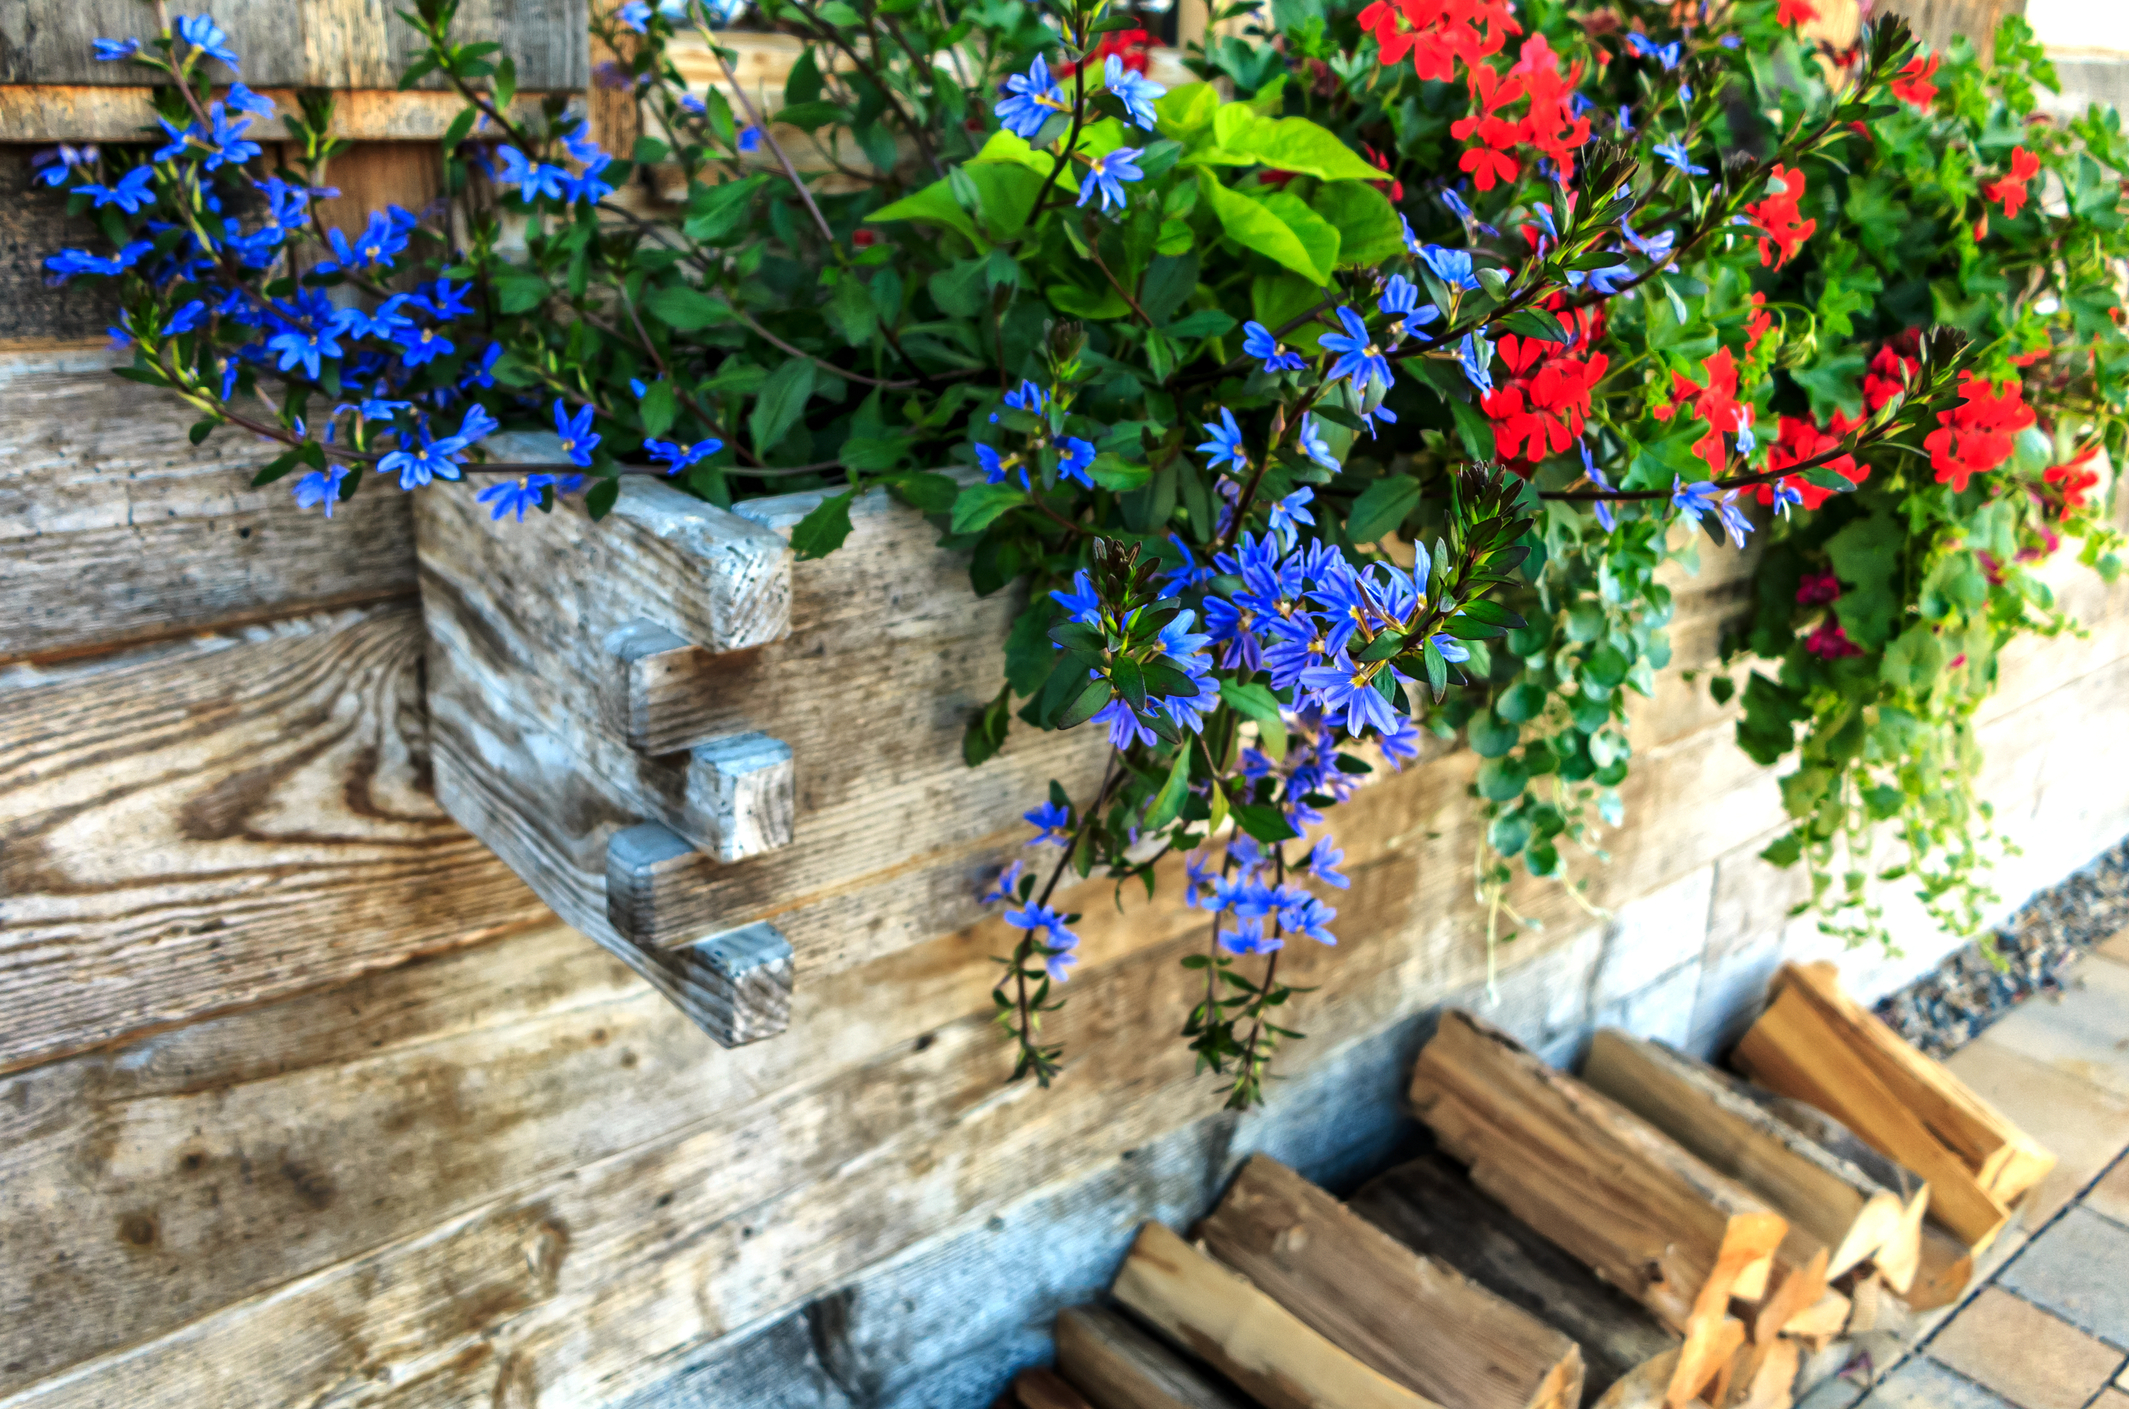 Putting together beautiful flower combinations is one of my favorite parts of landscaping. And now that Summer is in full swing, why not get your home looking beautiful? All you need are these great ideas for flower combinations! Check them out!